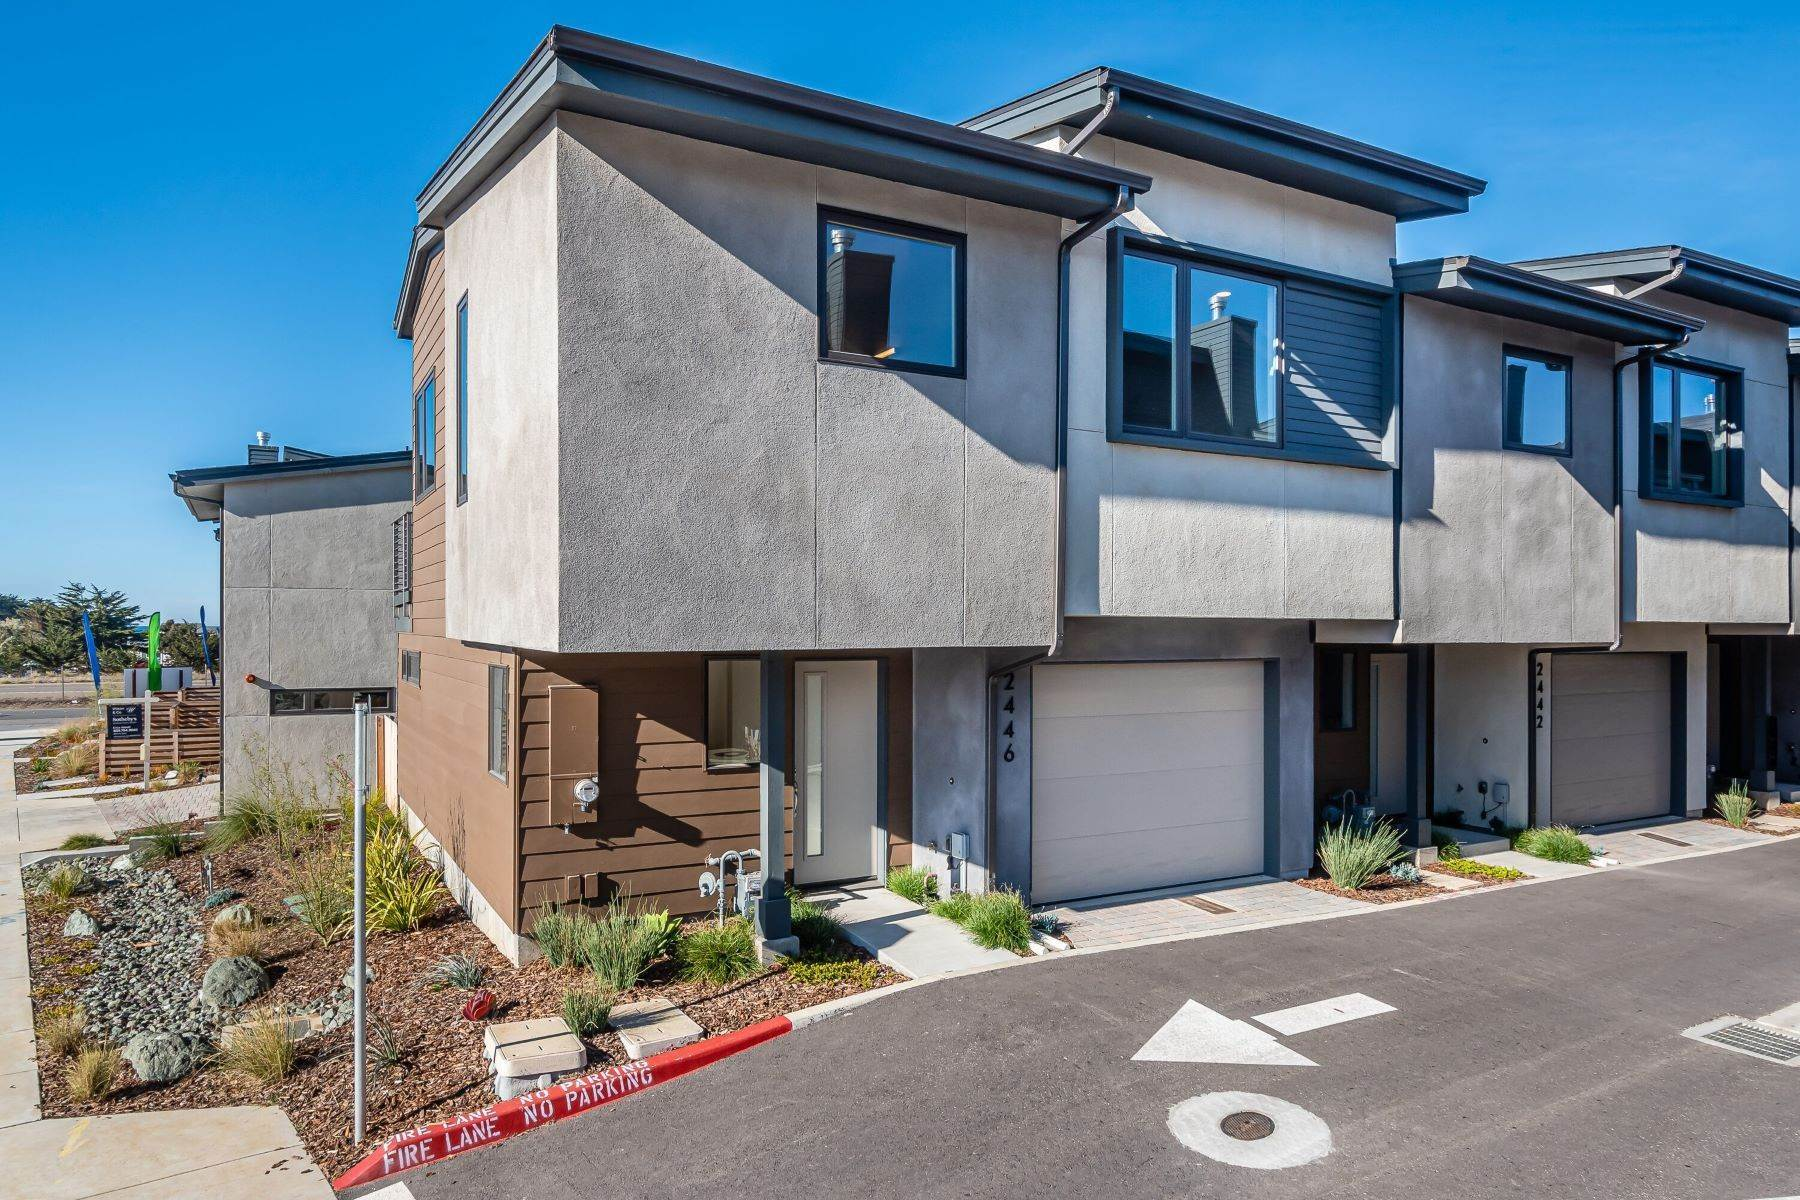 Single Family Homes for Sale at End-unit Brand New Beach Home 2446 Main Street Morro Bay, California 93442 United States